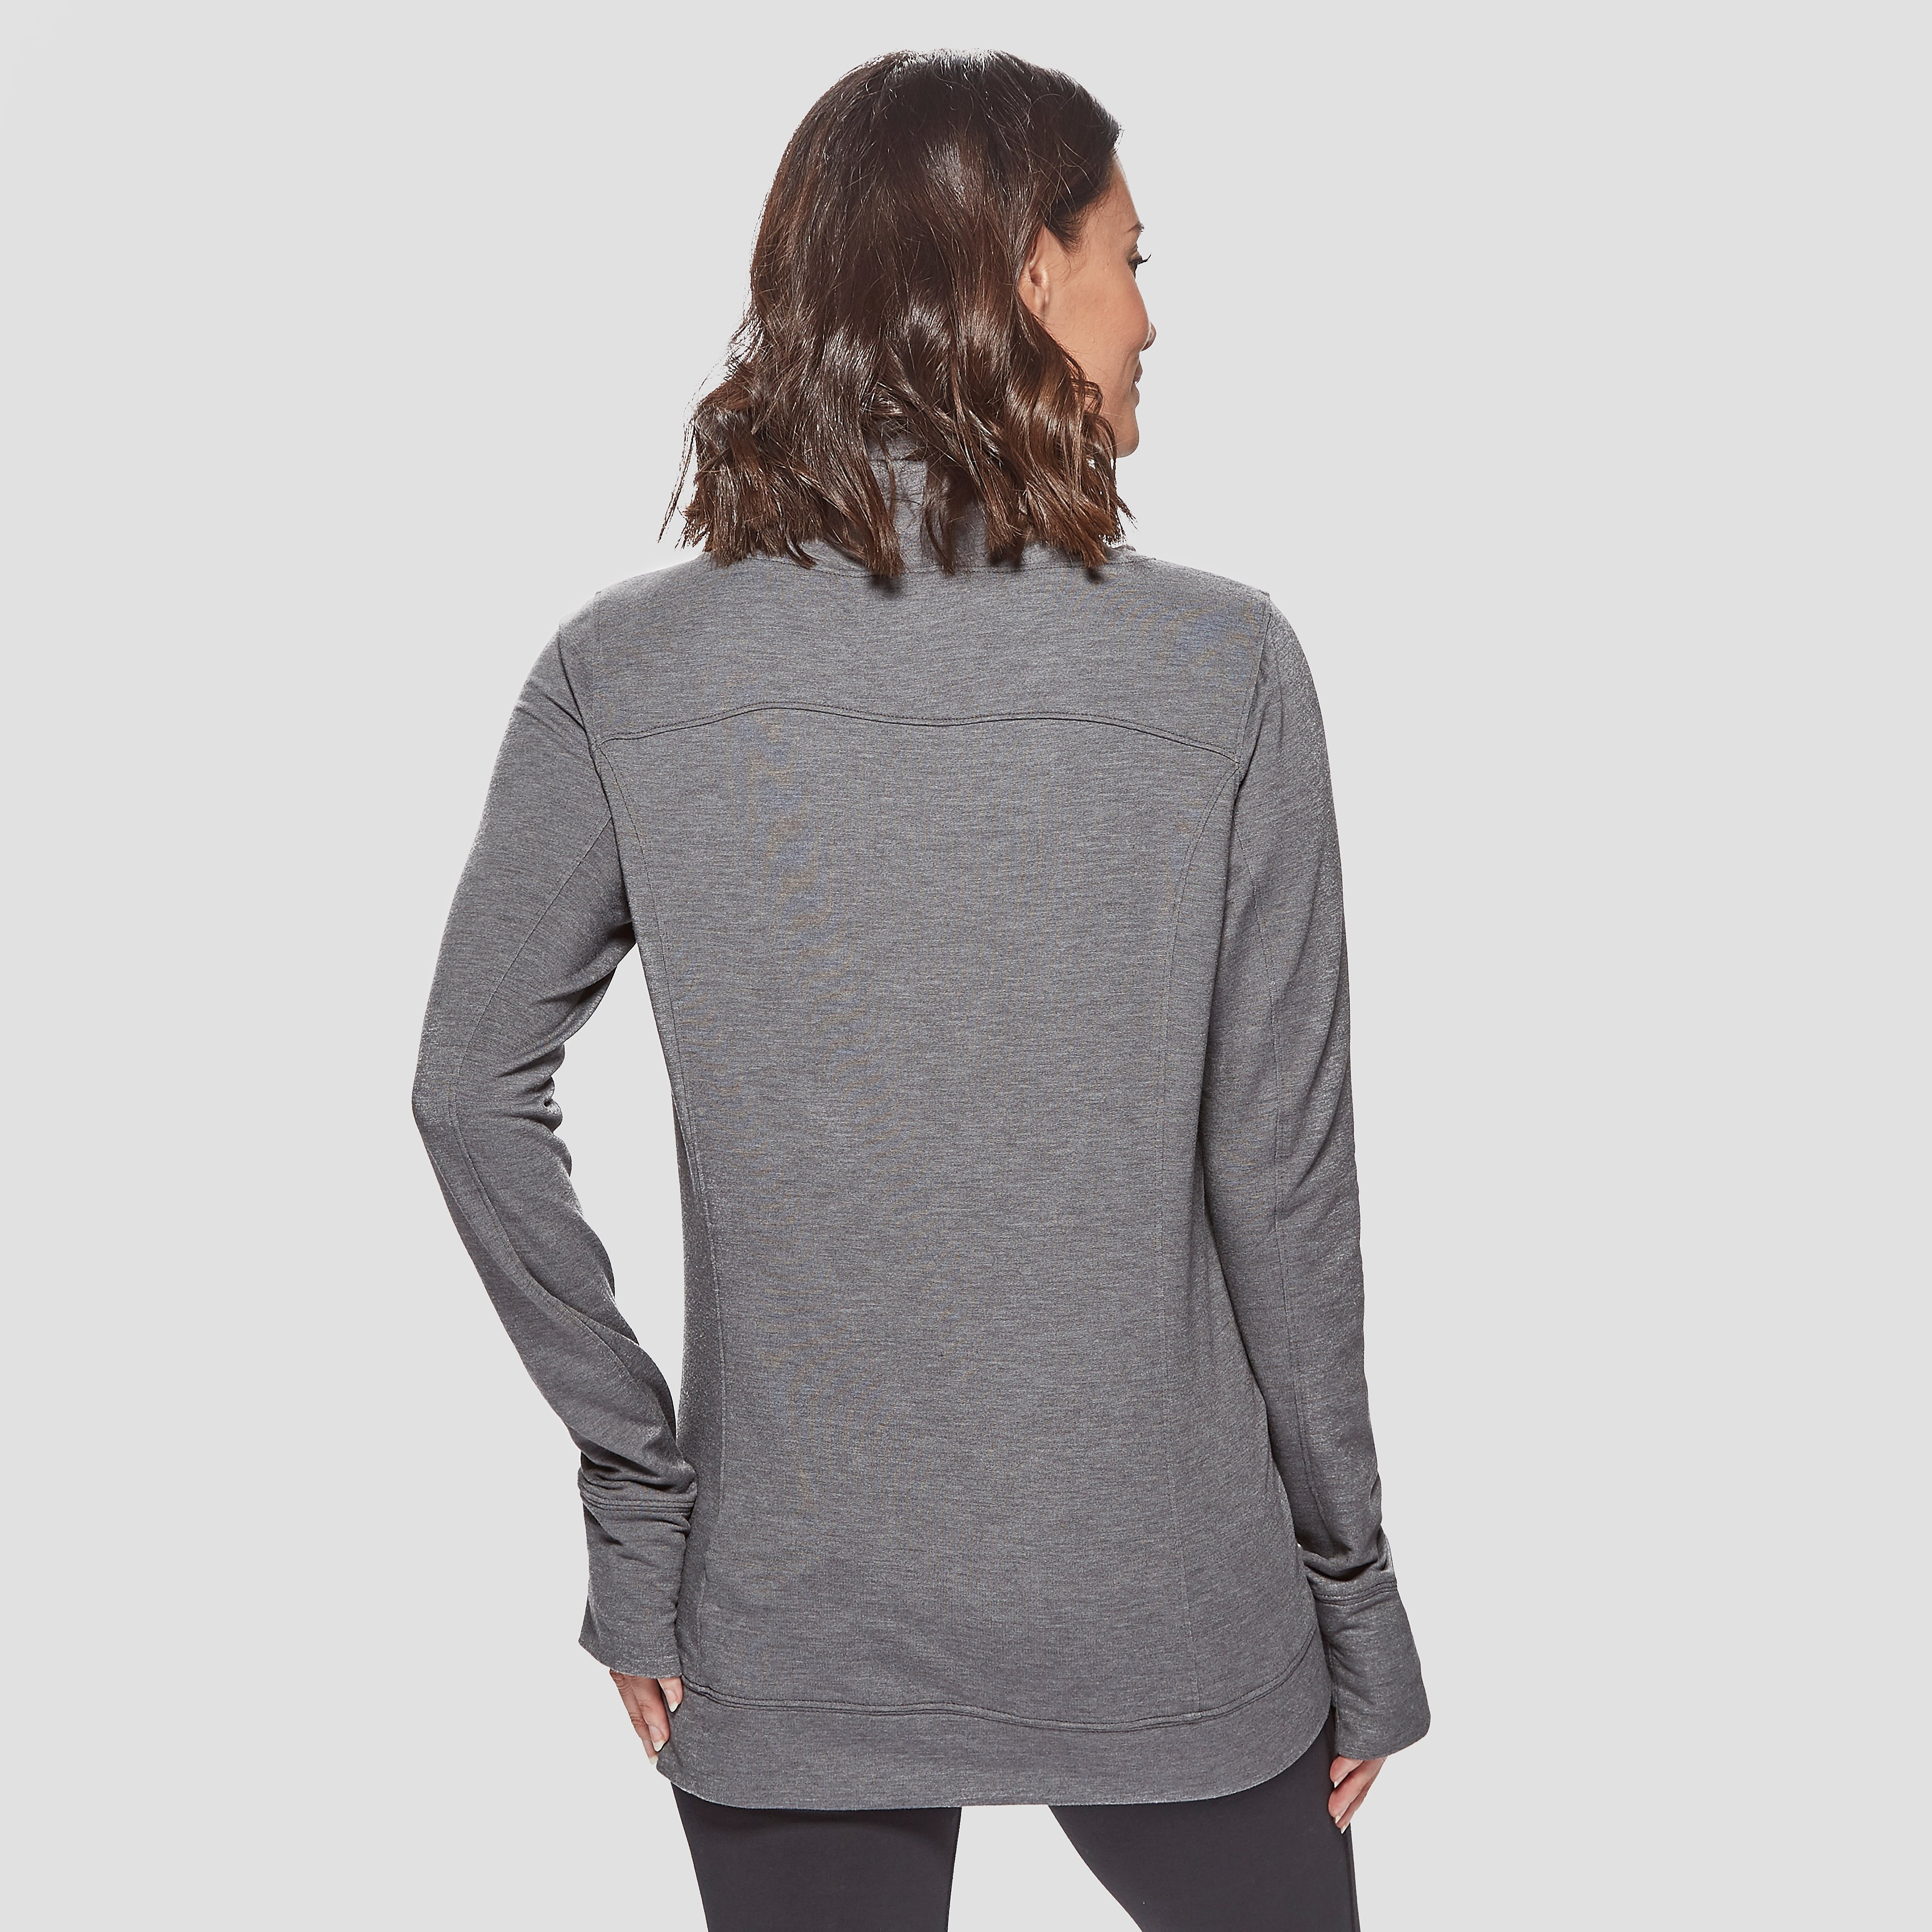 Under Armour Women's UA Featherweight Fleece Slouchy Popover